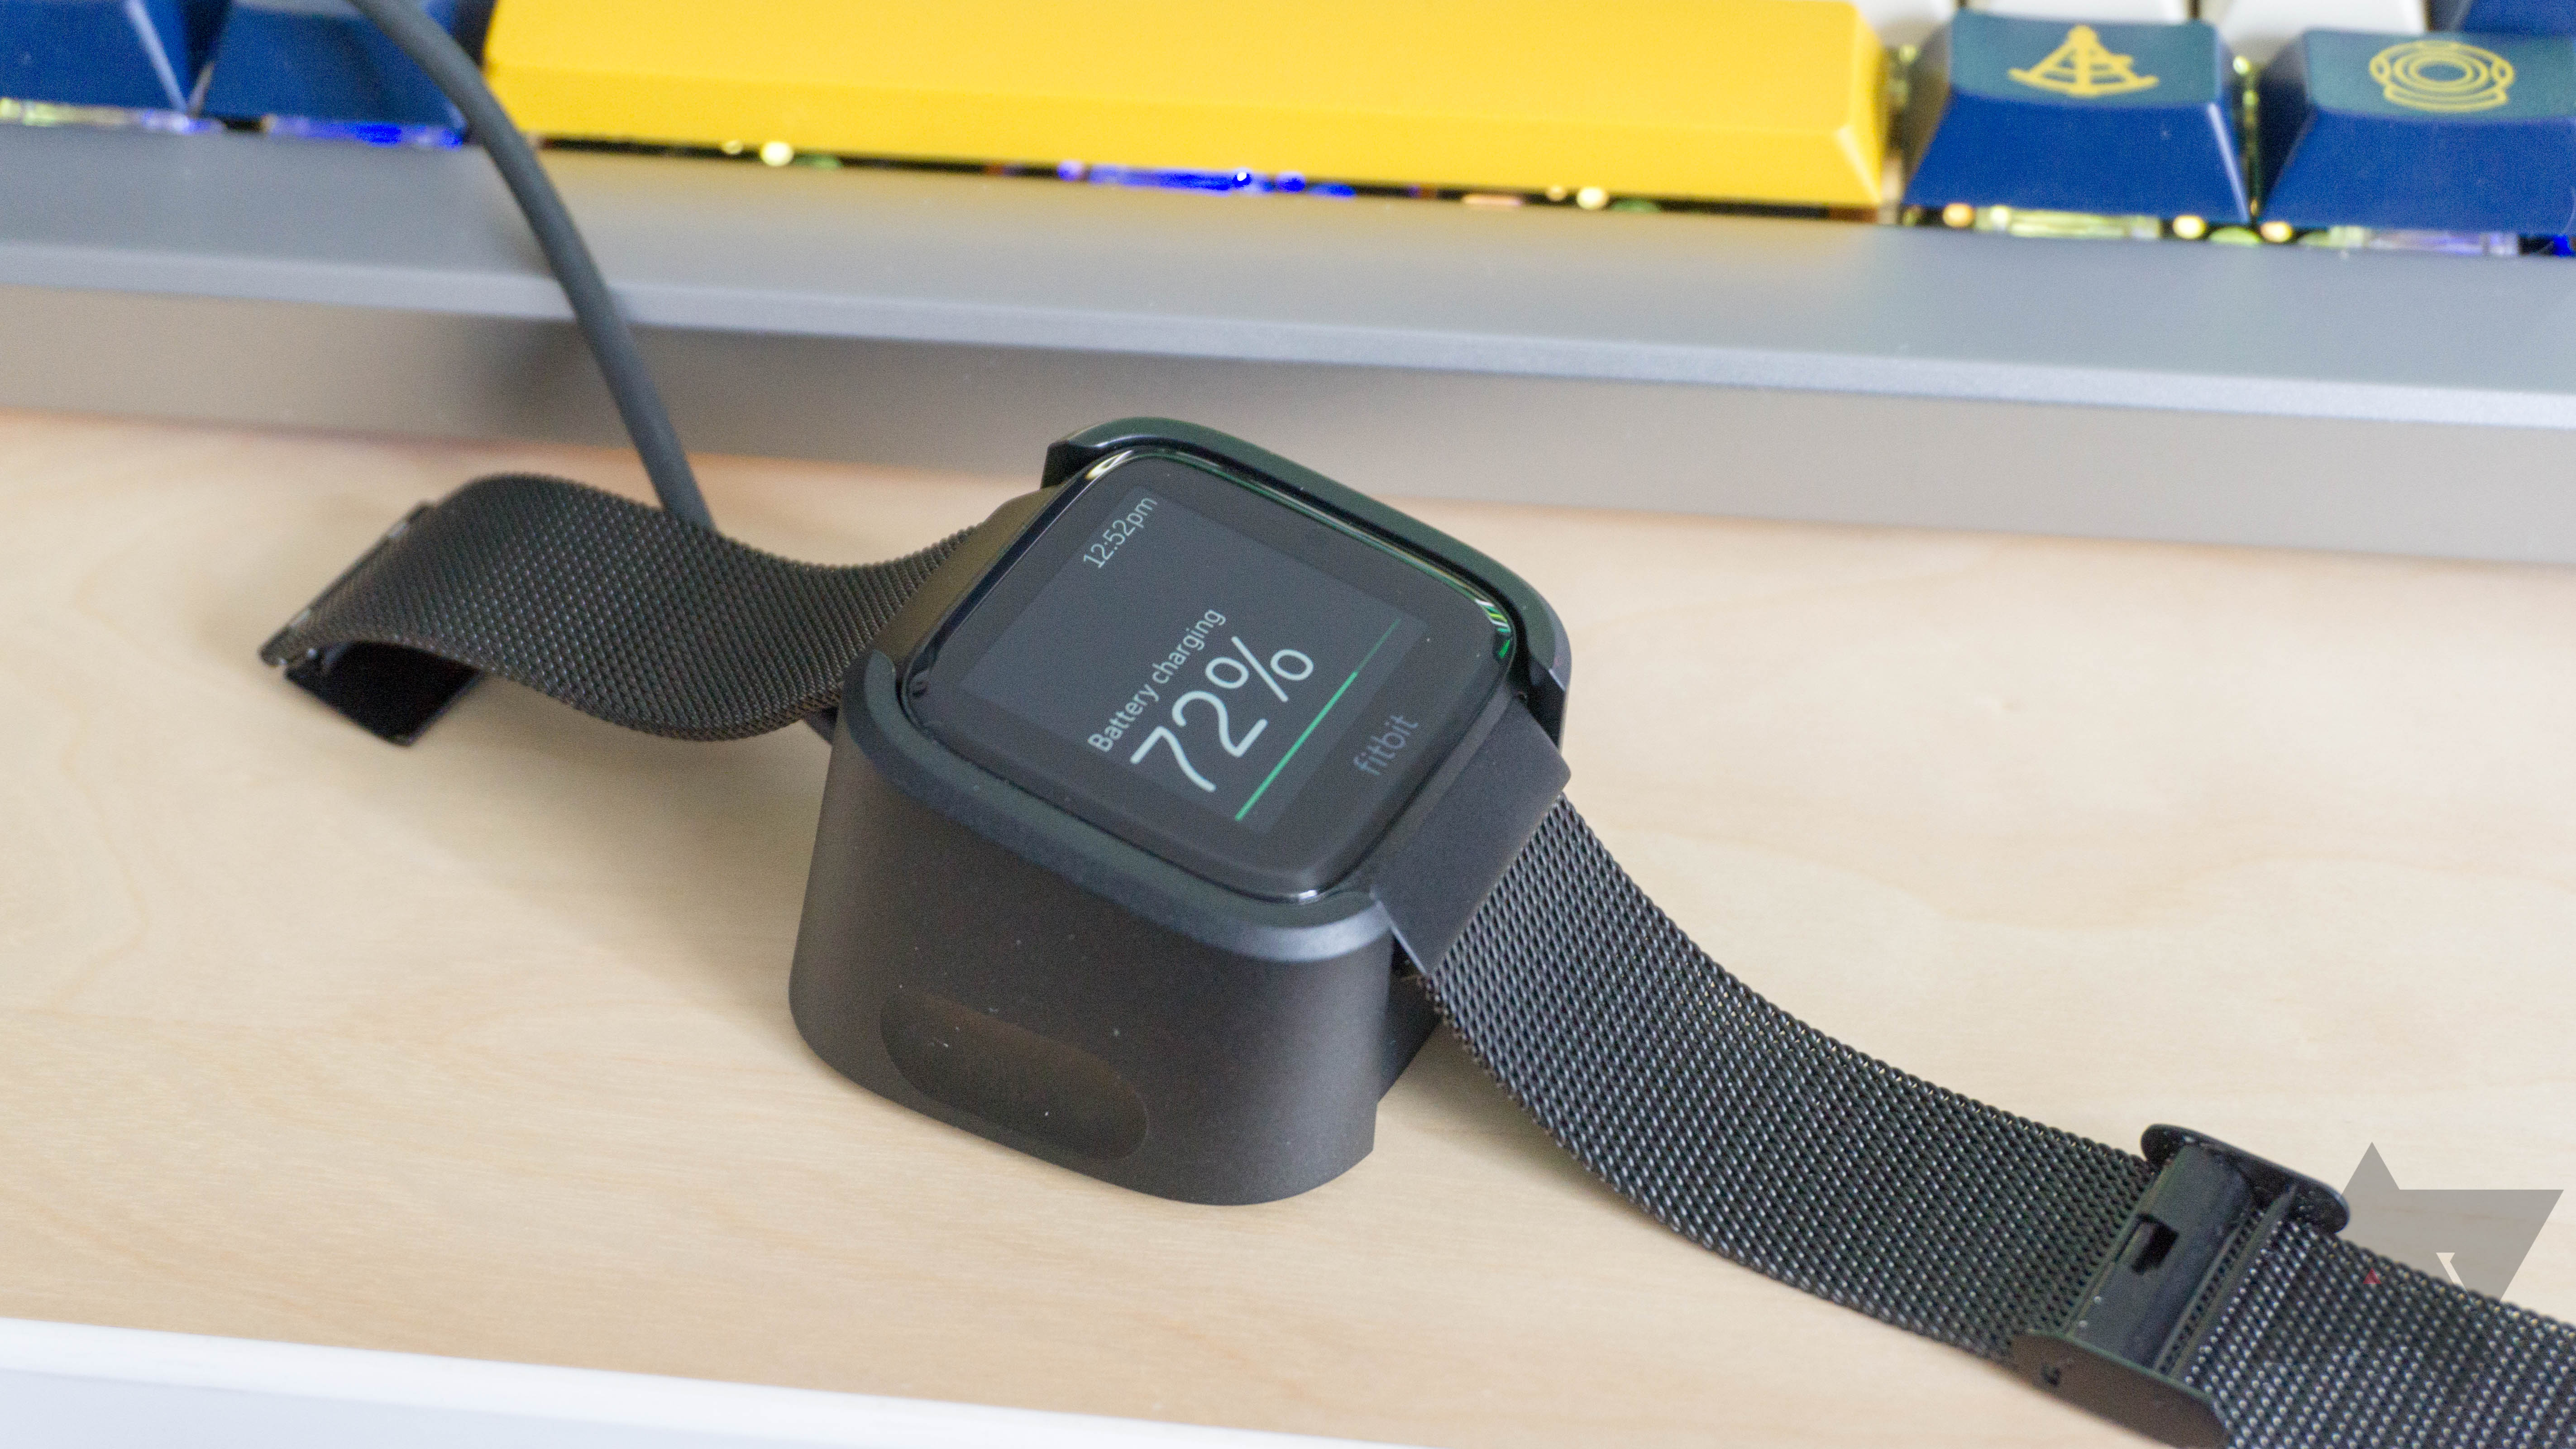 Fitbit Versa review: Fitbit's cheaper smartwatch is also a